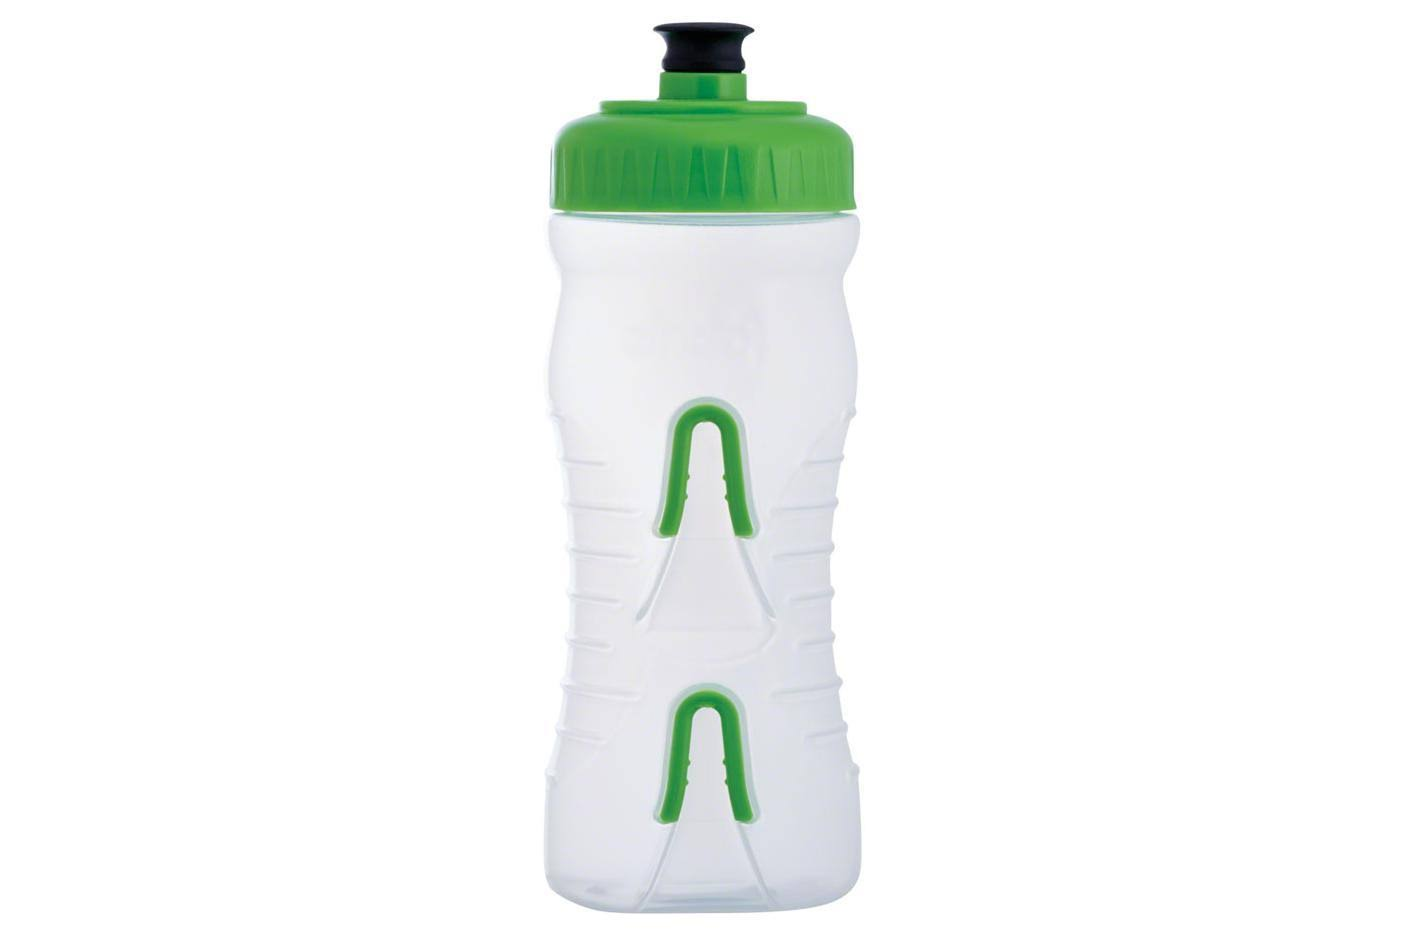 Fabric Water Bottle - Clear Green, 600ml